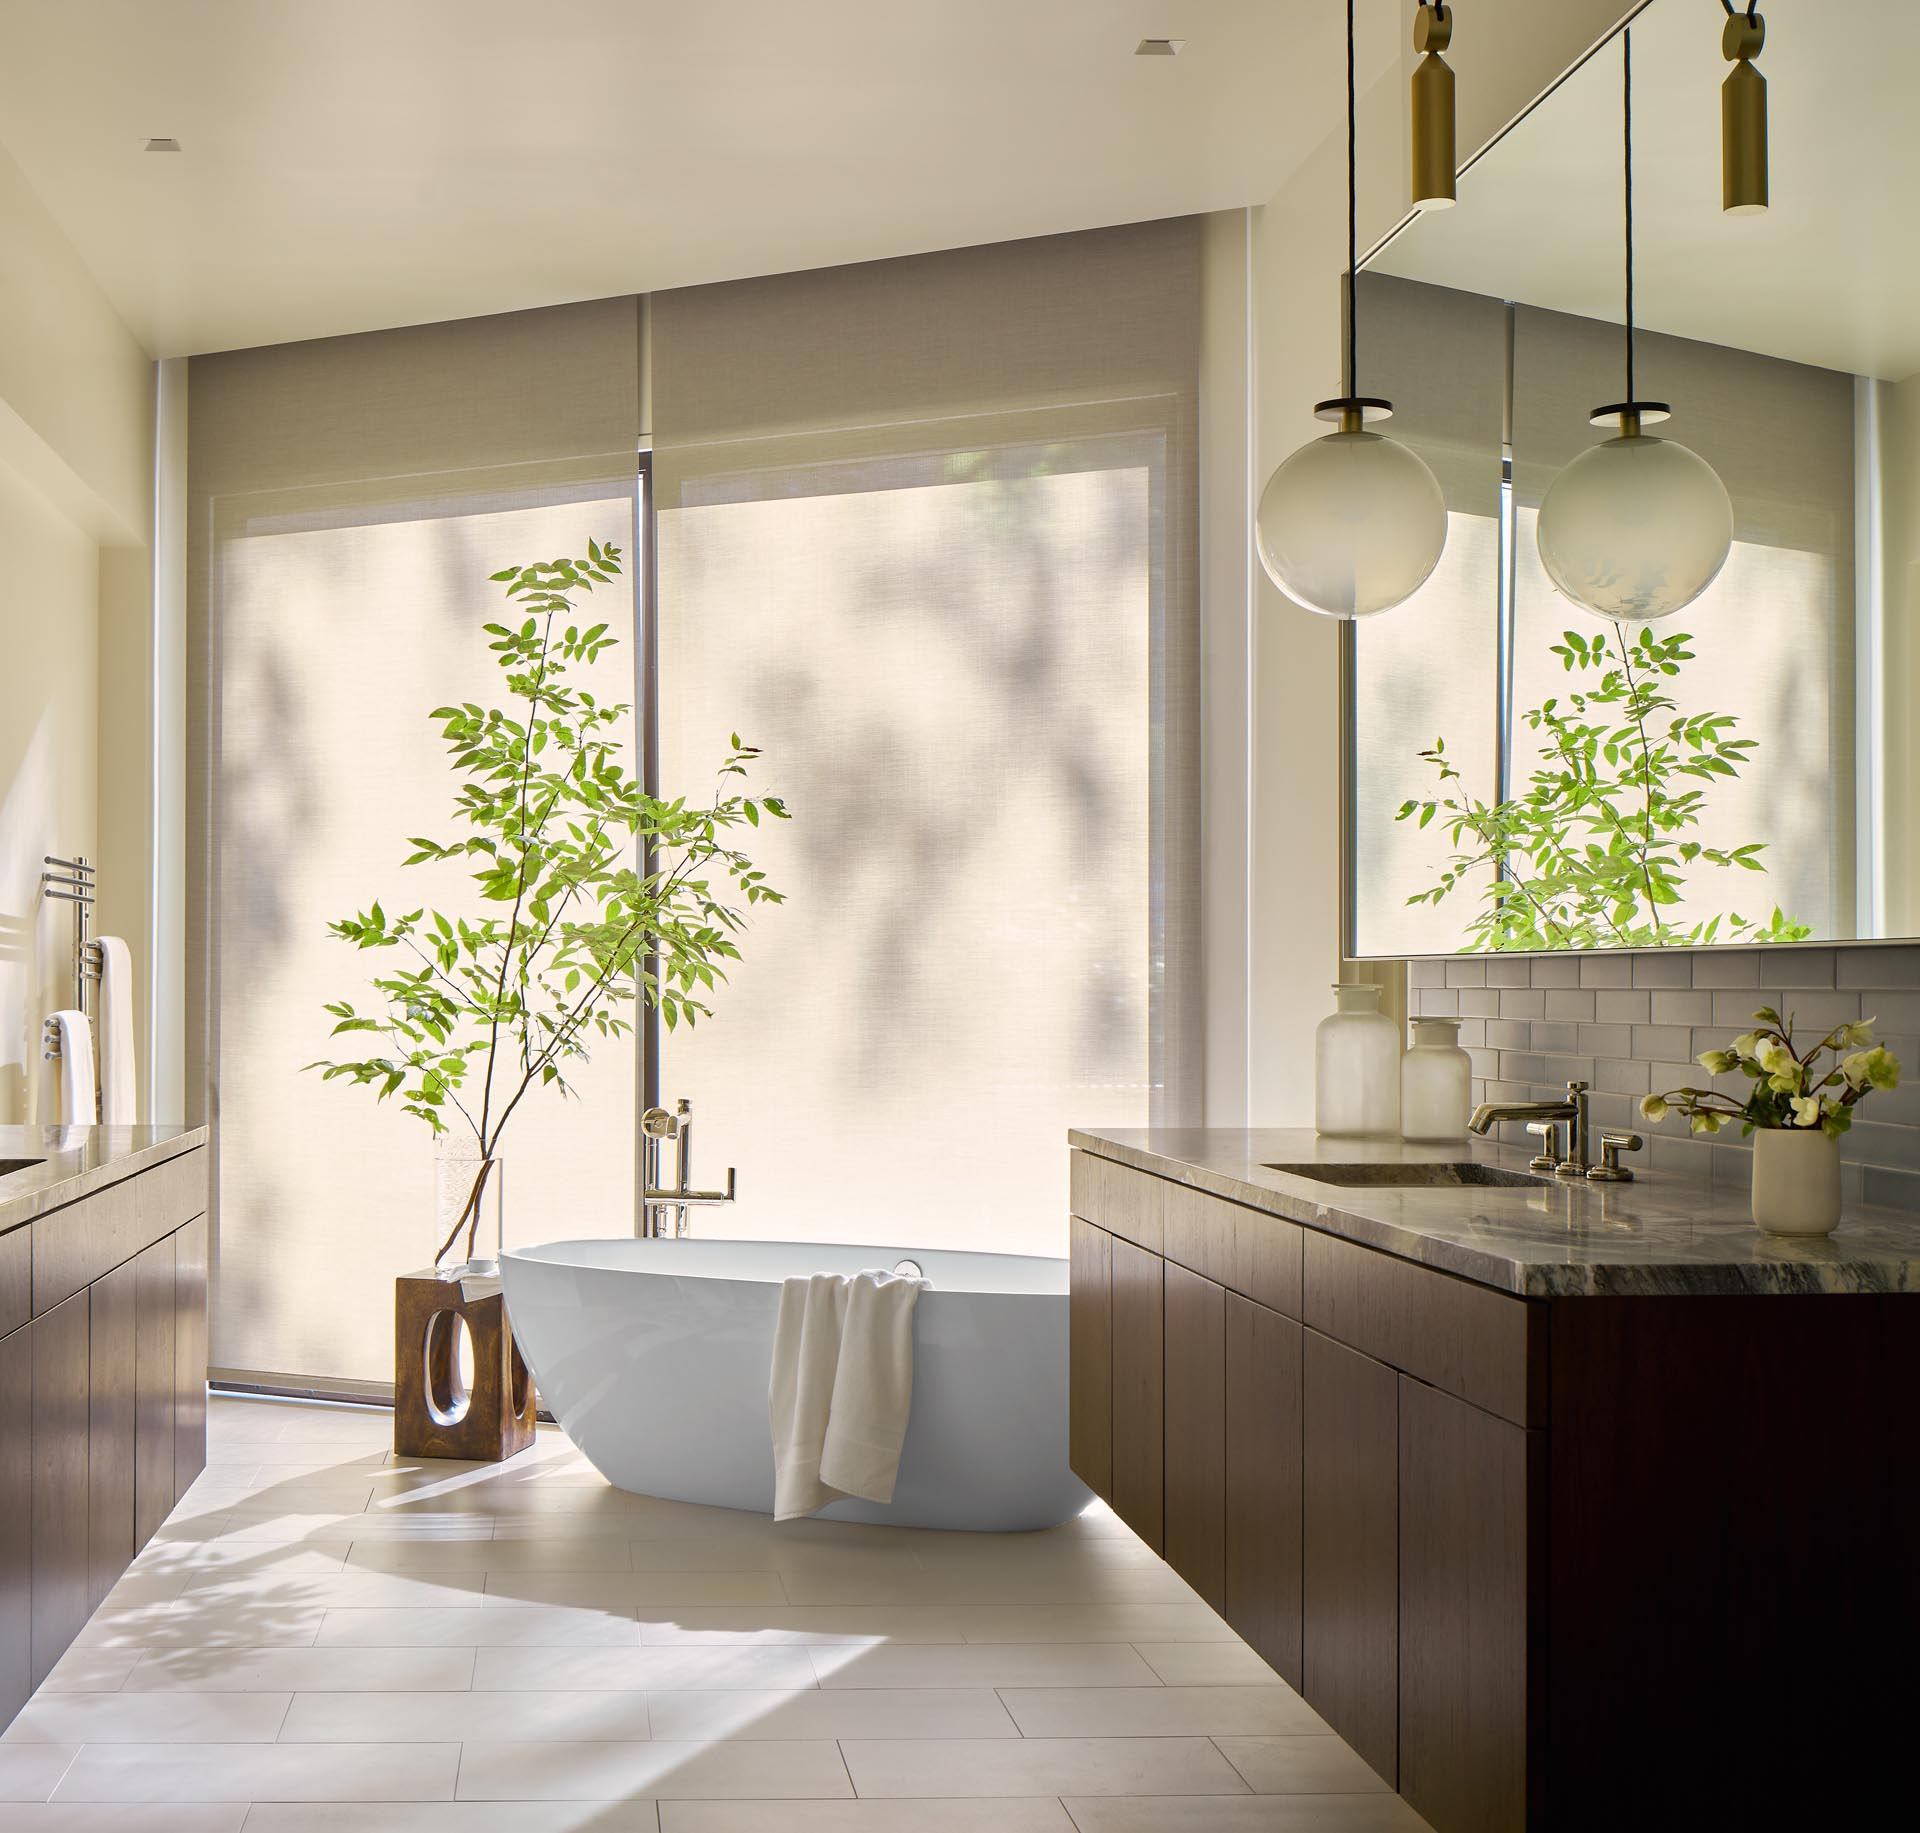 In this modern primary bathroom, there's dual vanities and a freestanding bathtub by the windows.